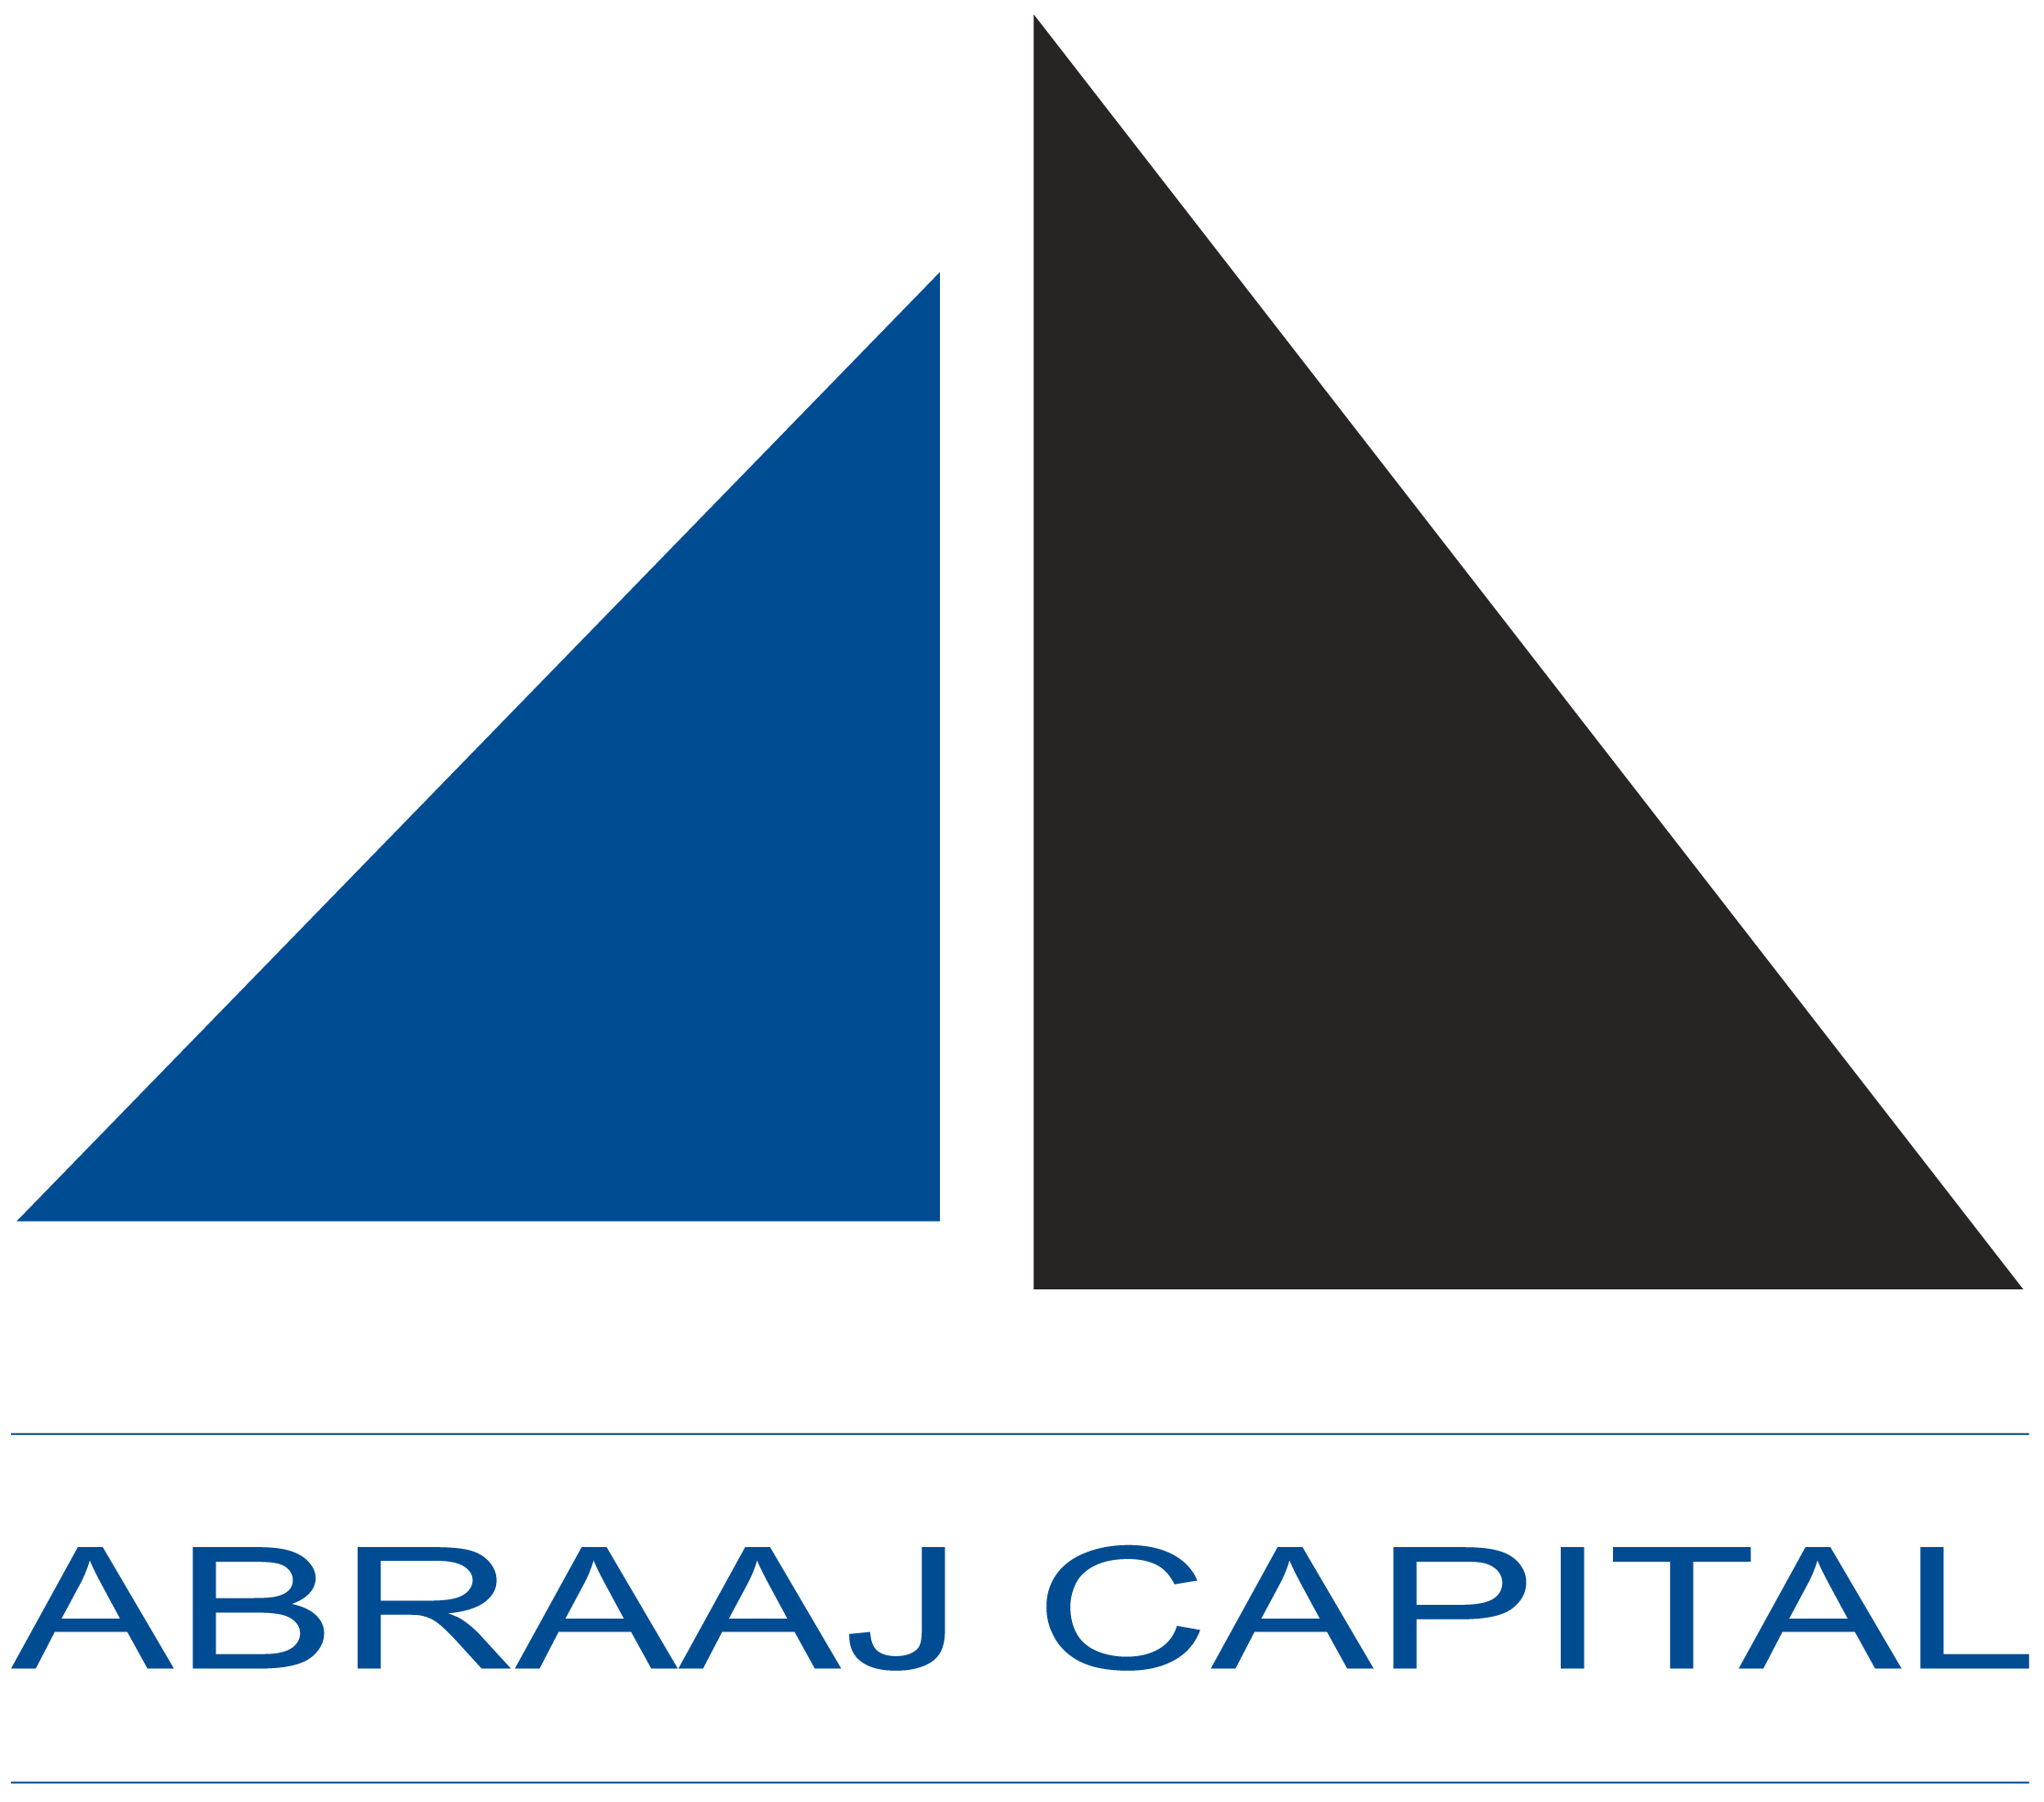 File:Abraaj Capital Logo.jpg - Wikipedia, the free encyclopedia